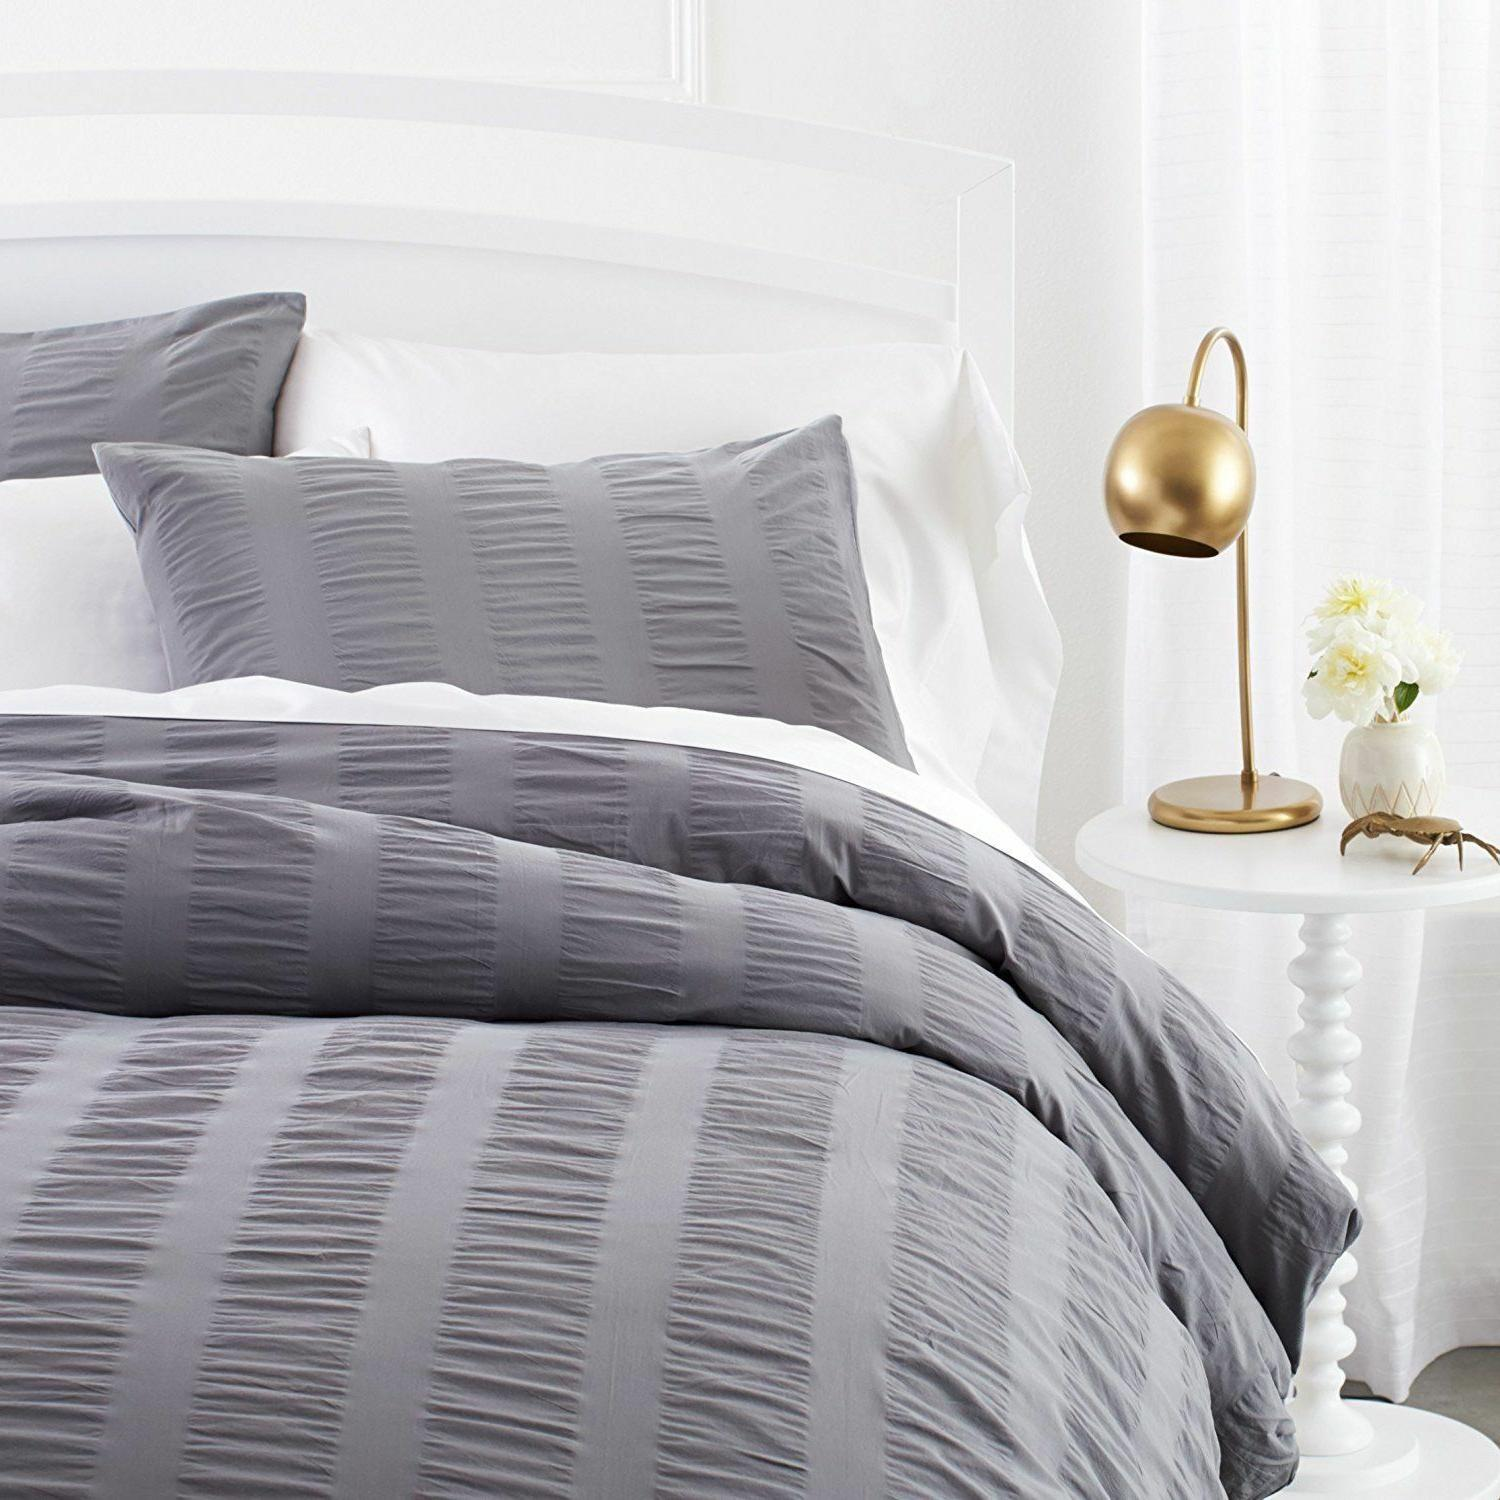 seersucker duvet cover set full queen grey